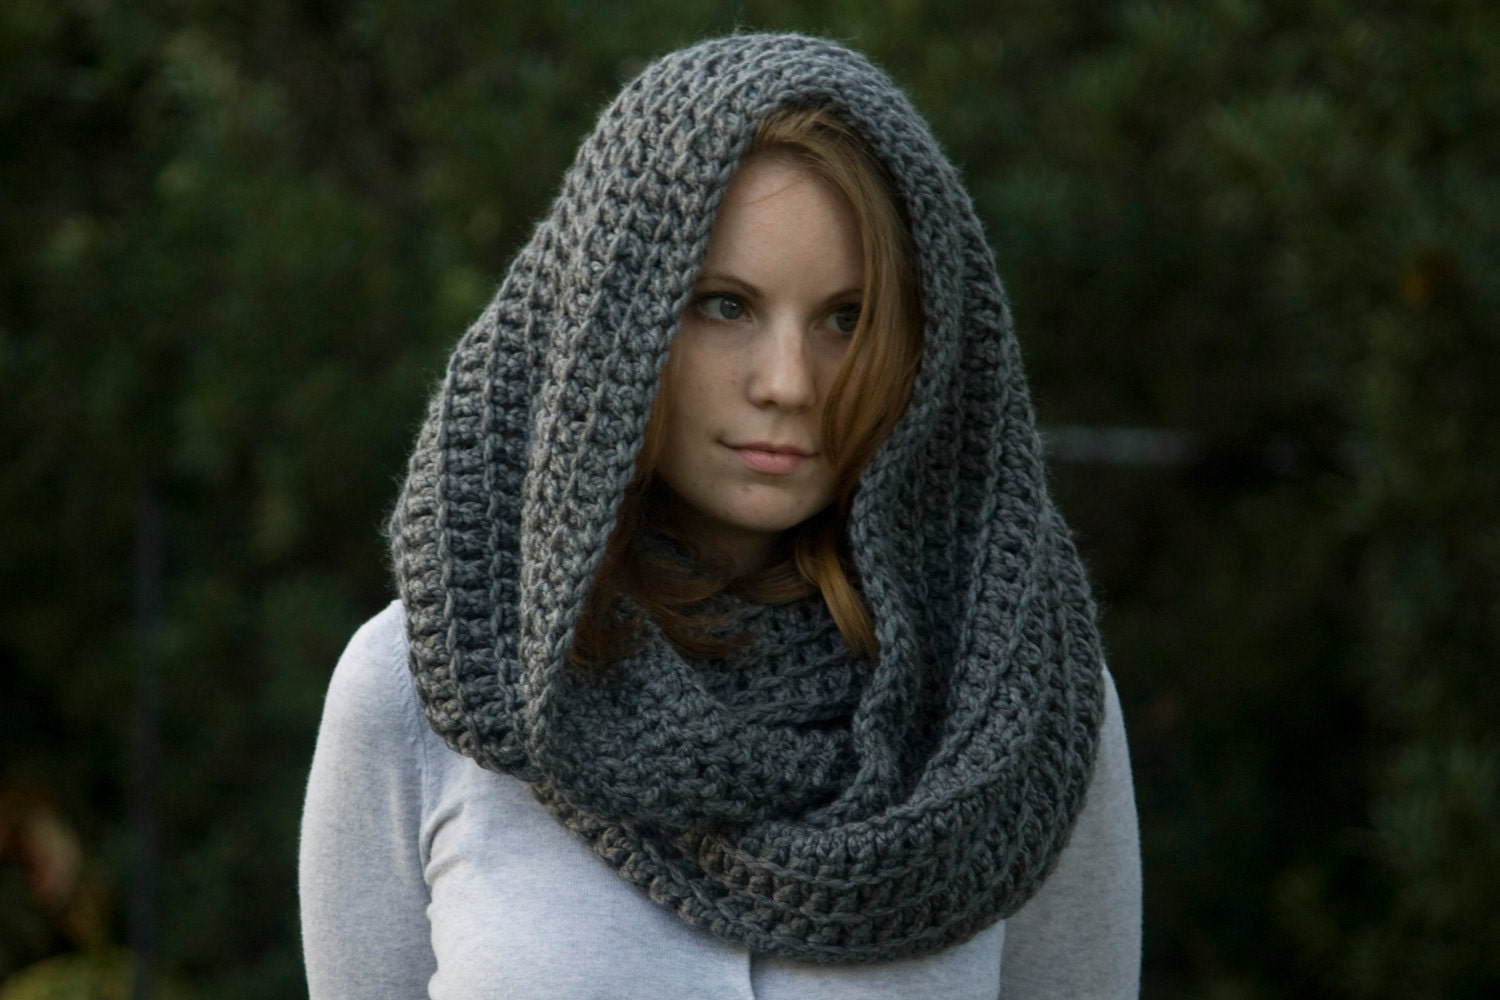 Free Crochet Pattern For Infinity Scarf With Hood : CROCHET PATTERN Oversized Hooded Infinity Scarf Cowl